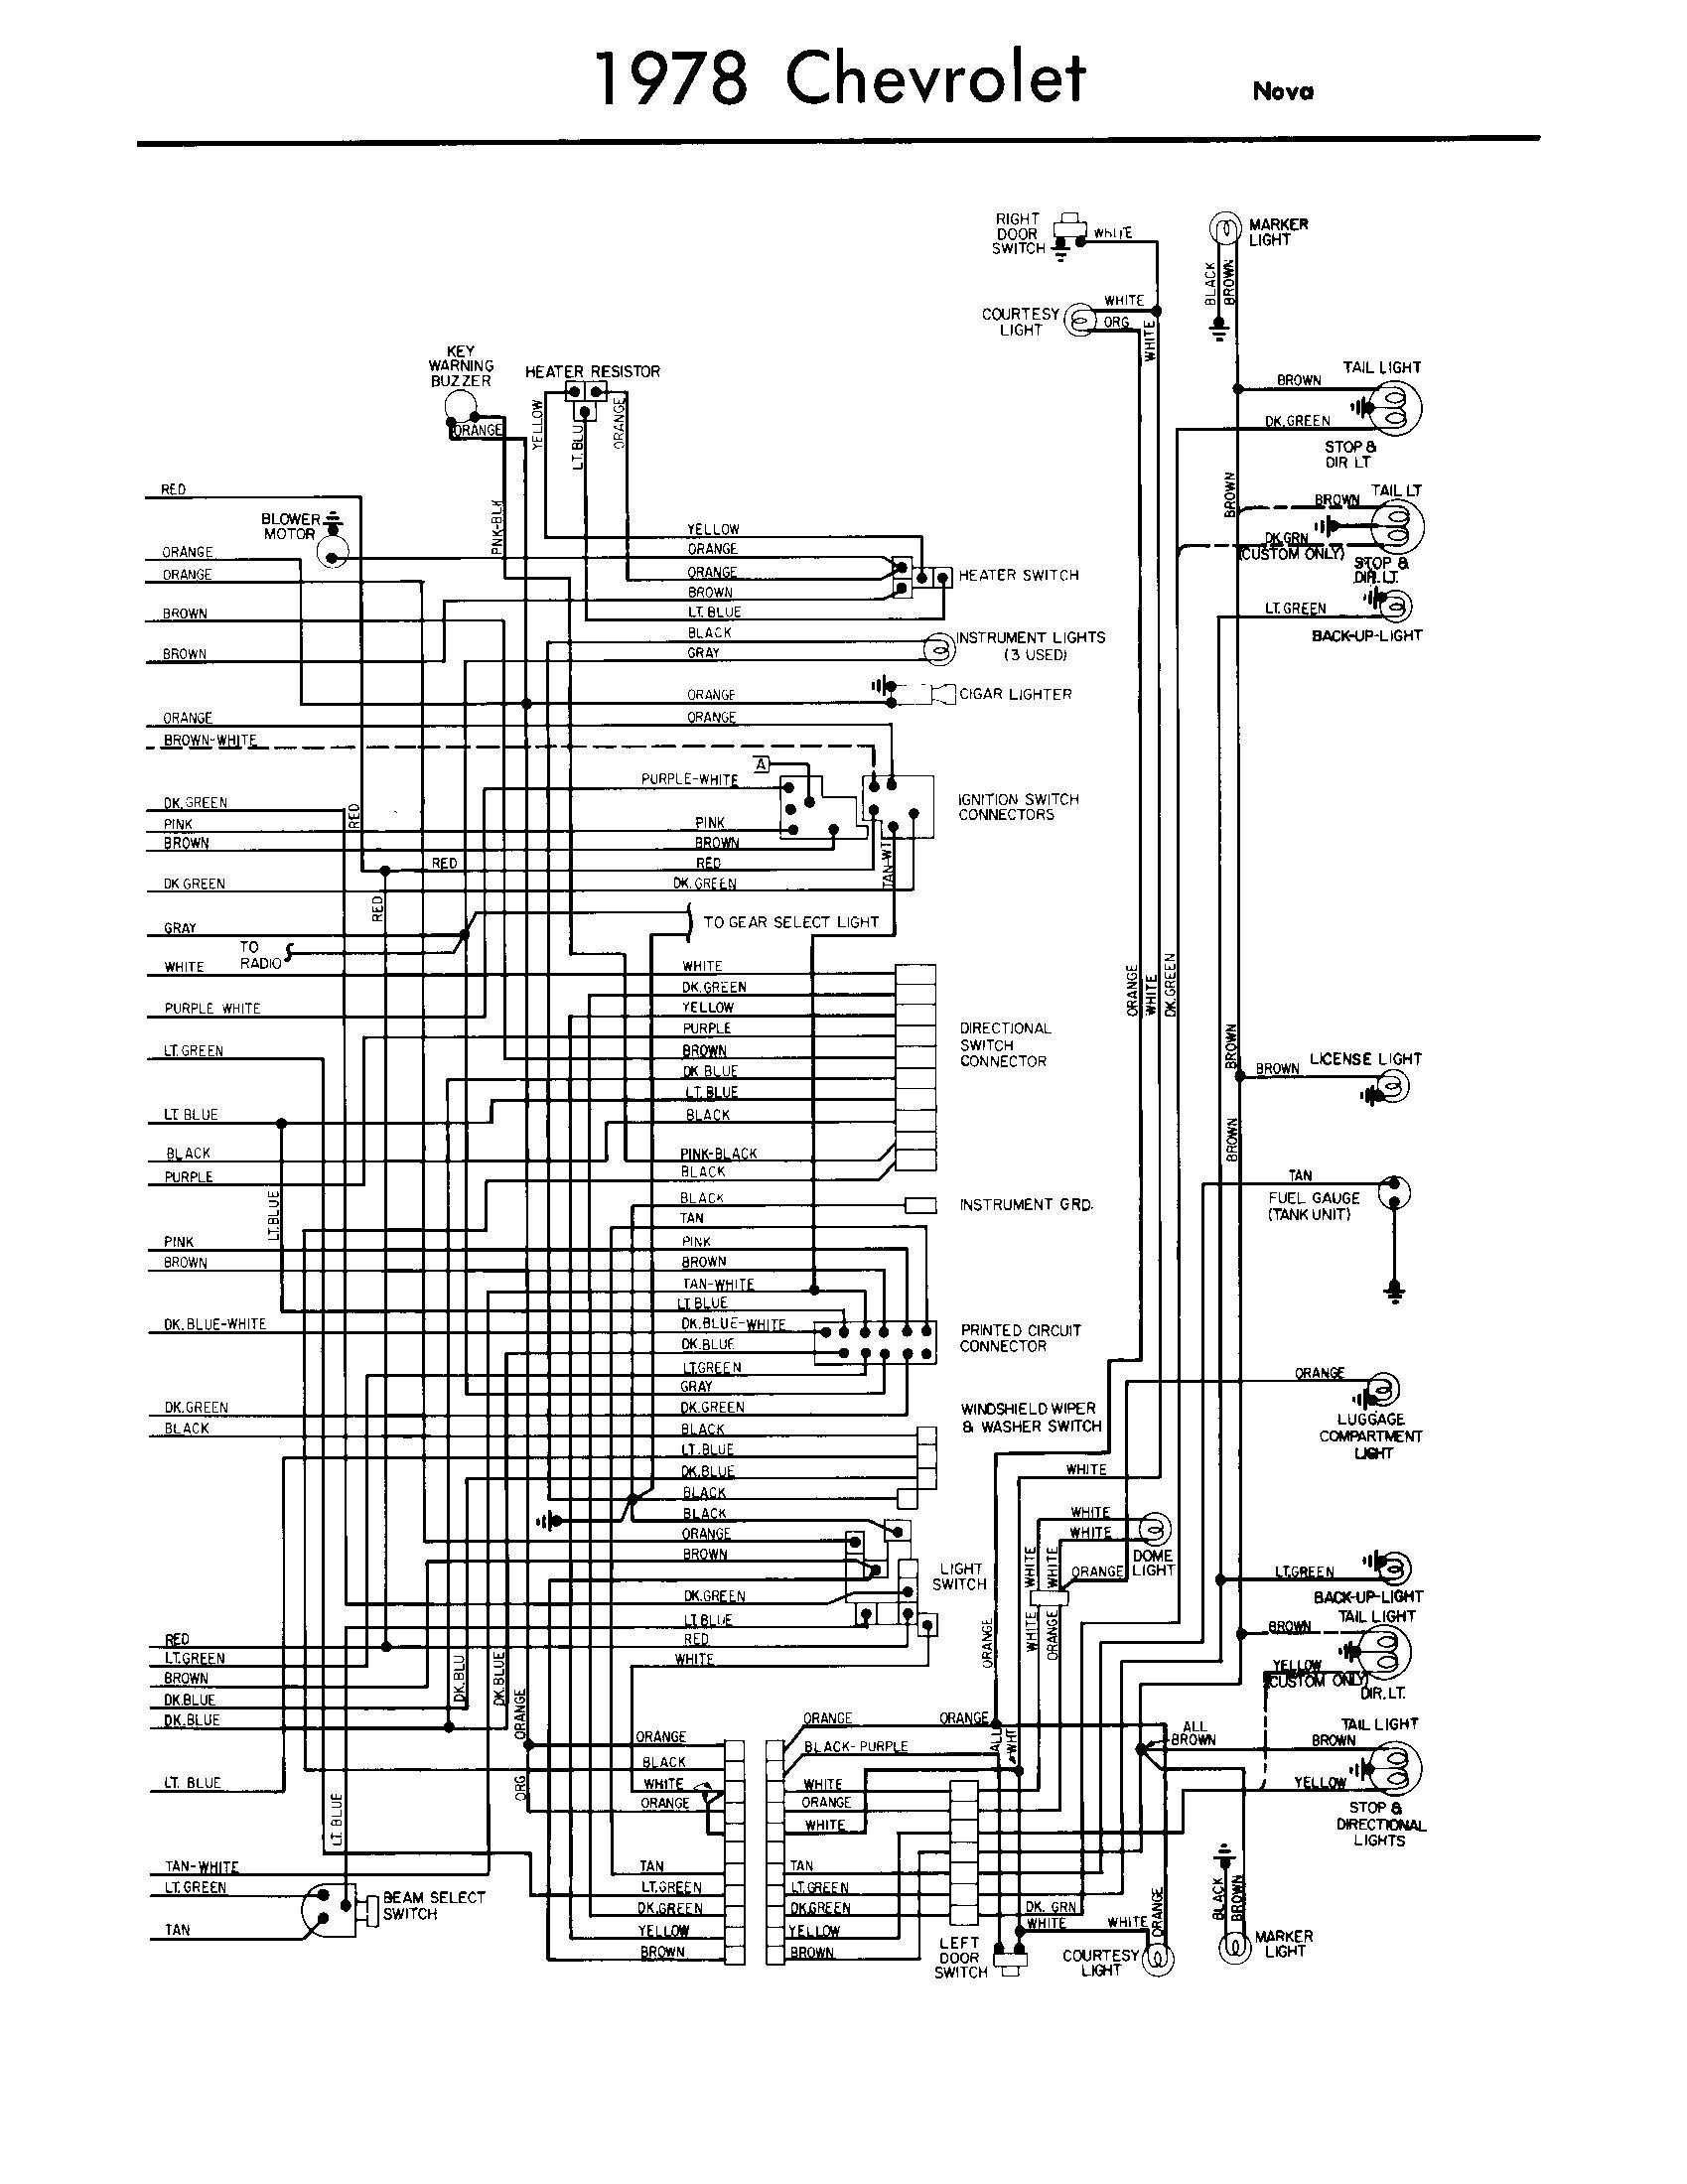 corvette wiring diagram likewise 1979 chevy camaro wiring diagram on rh wildcatgroup co 1971 Corvette Wiring Diagram PDF 1998 Corvette Wiring Diagram